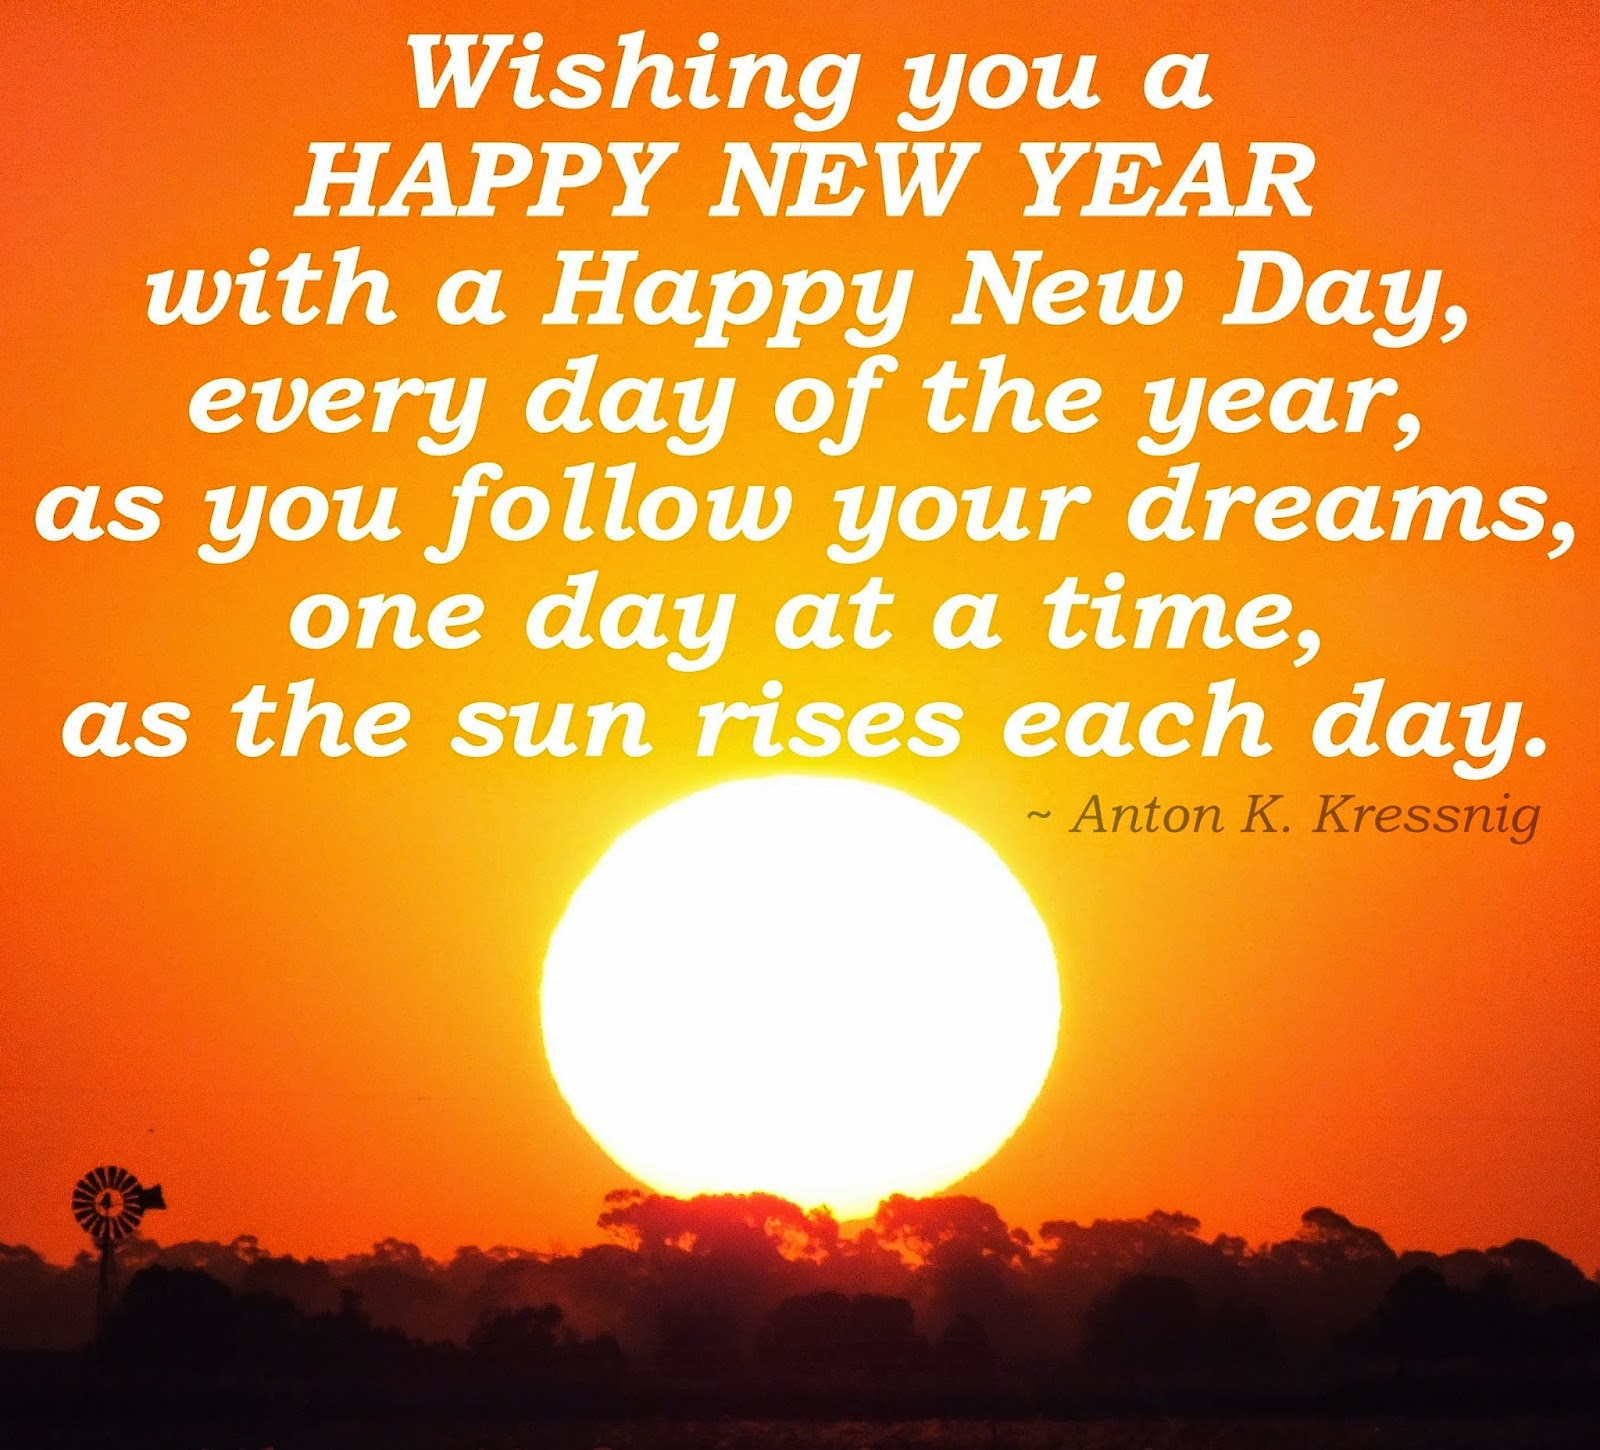 New Day Inspirational Quotes: New Day New Month Quotes. QuotesGram